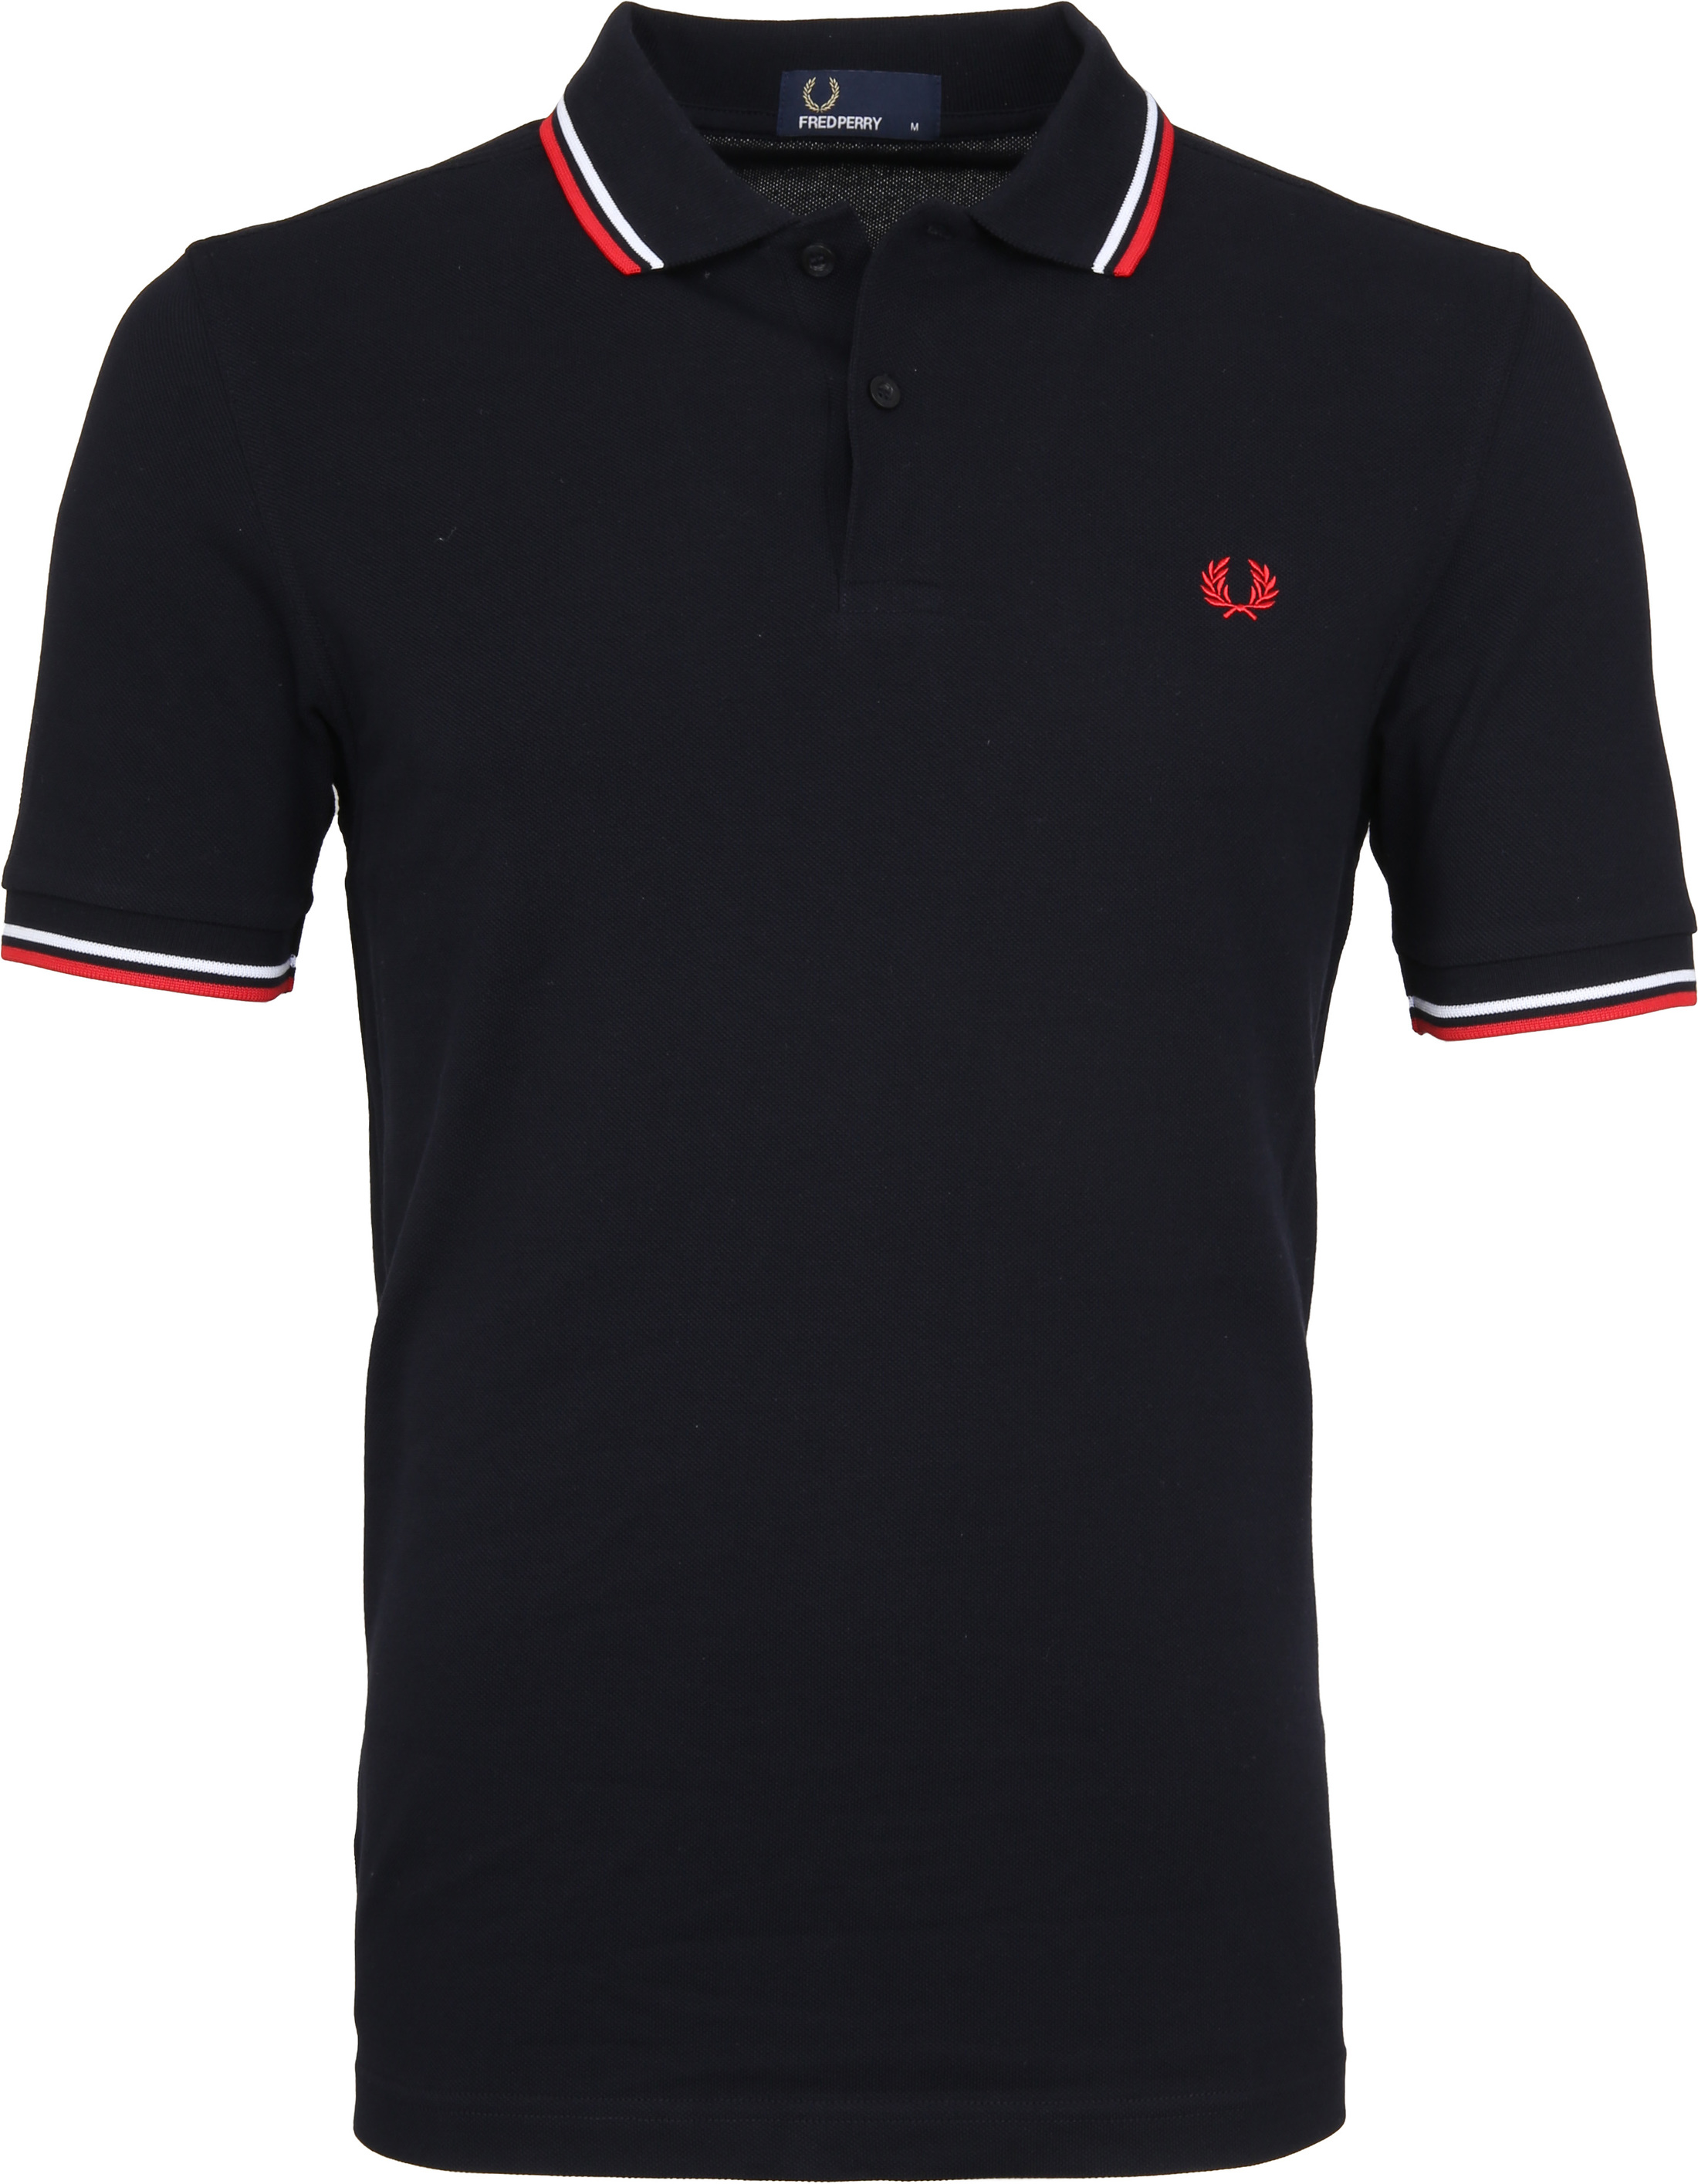 Fred Perry Polo Shirt Navy White Red foto 0